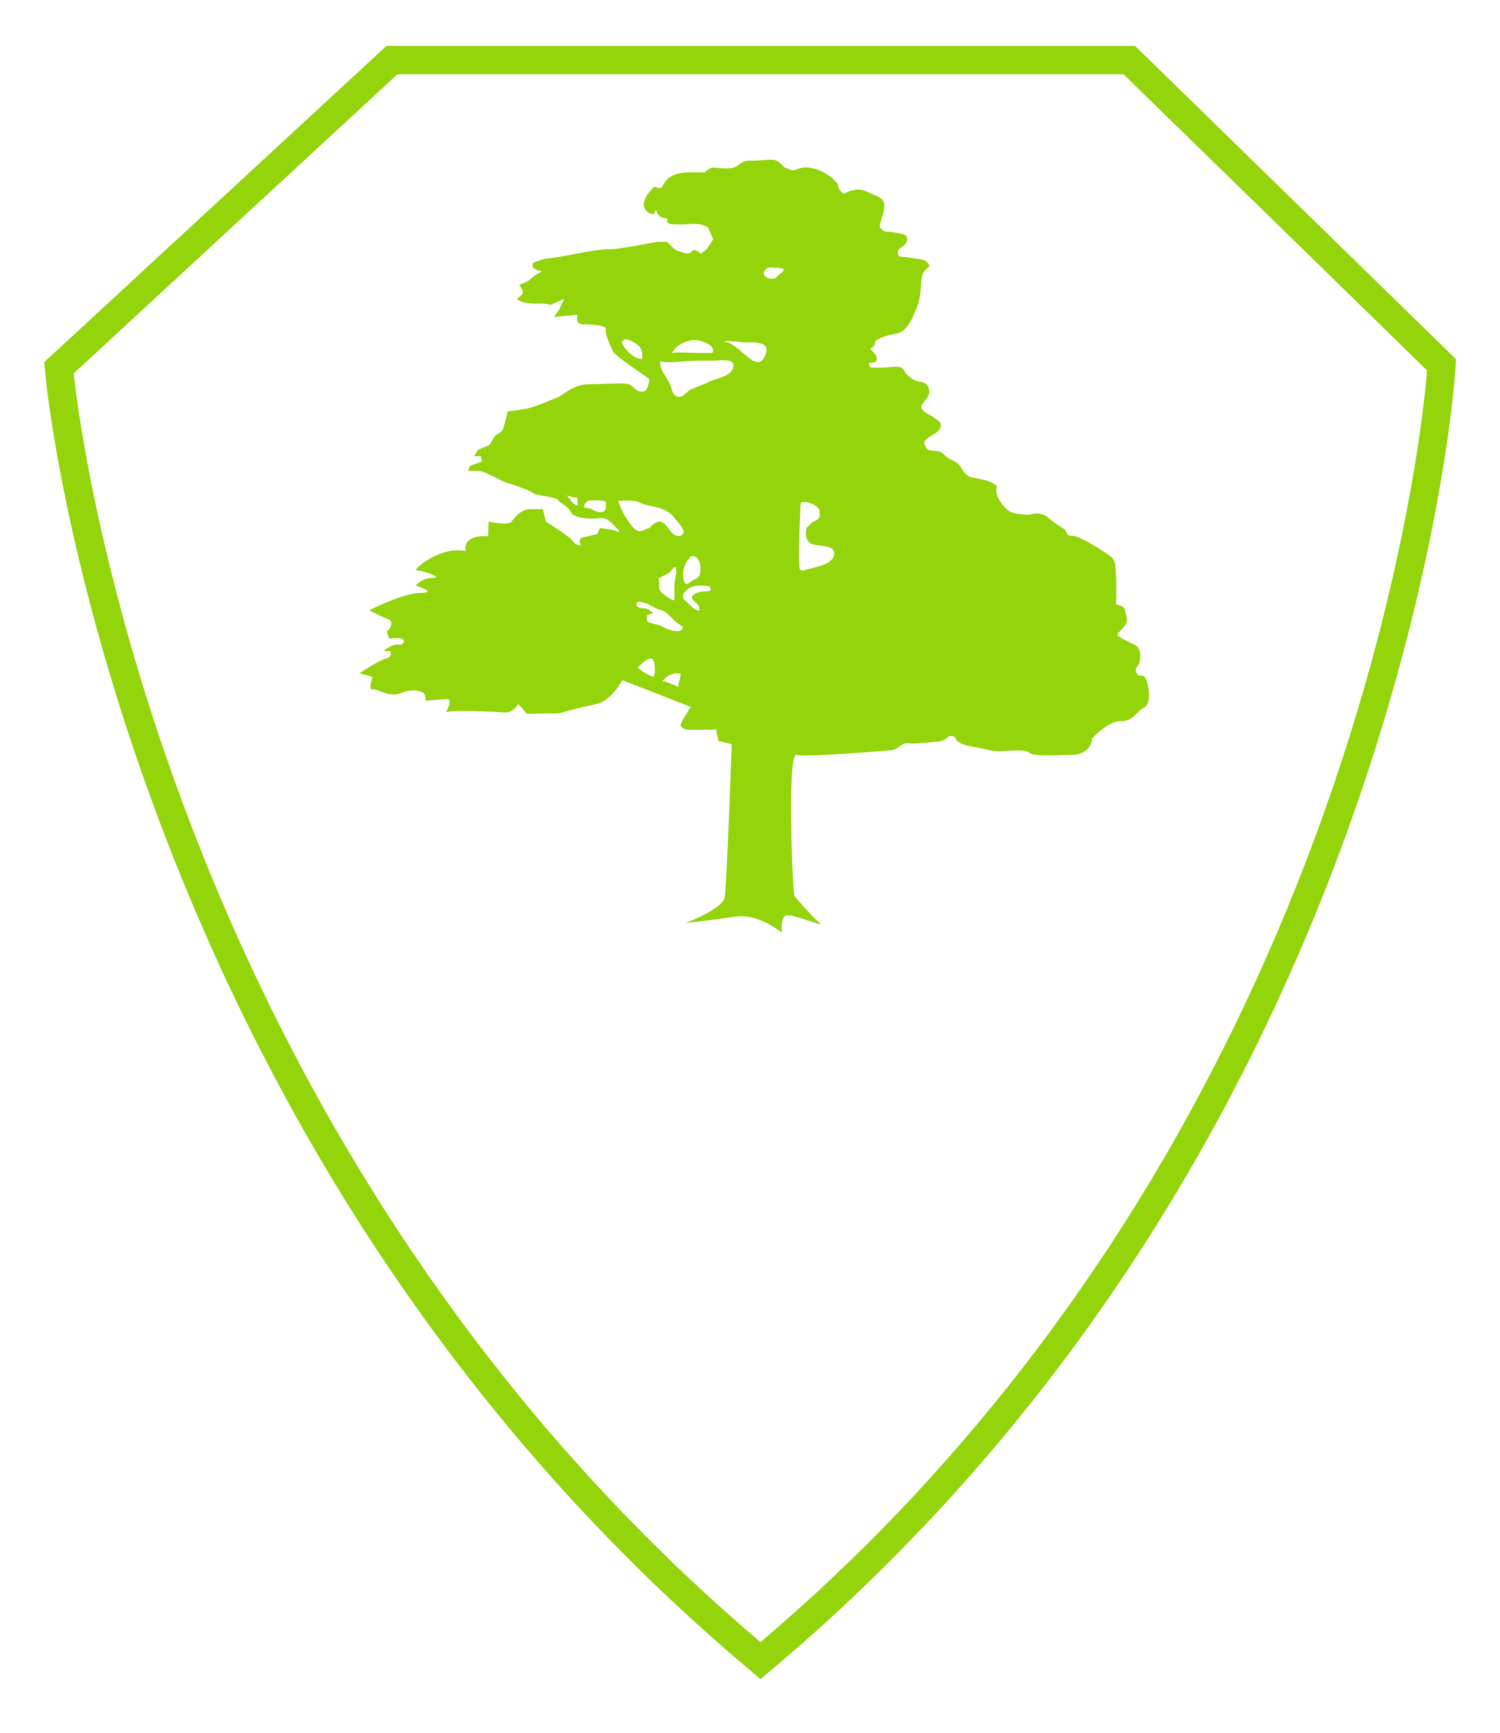 The Evergreen Lacrosse Club